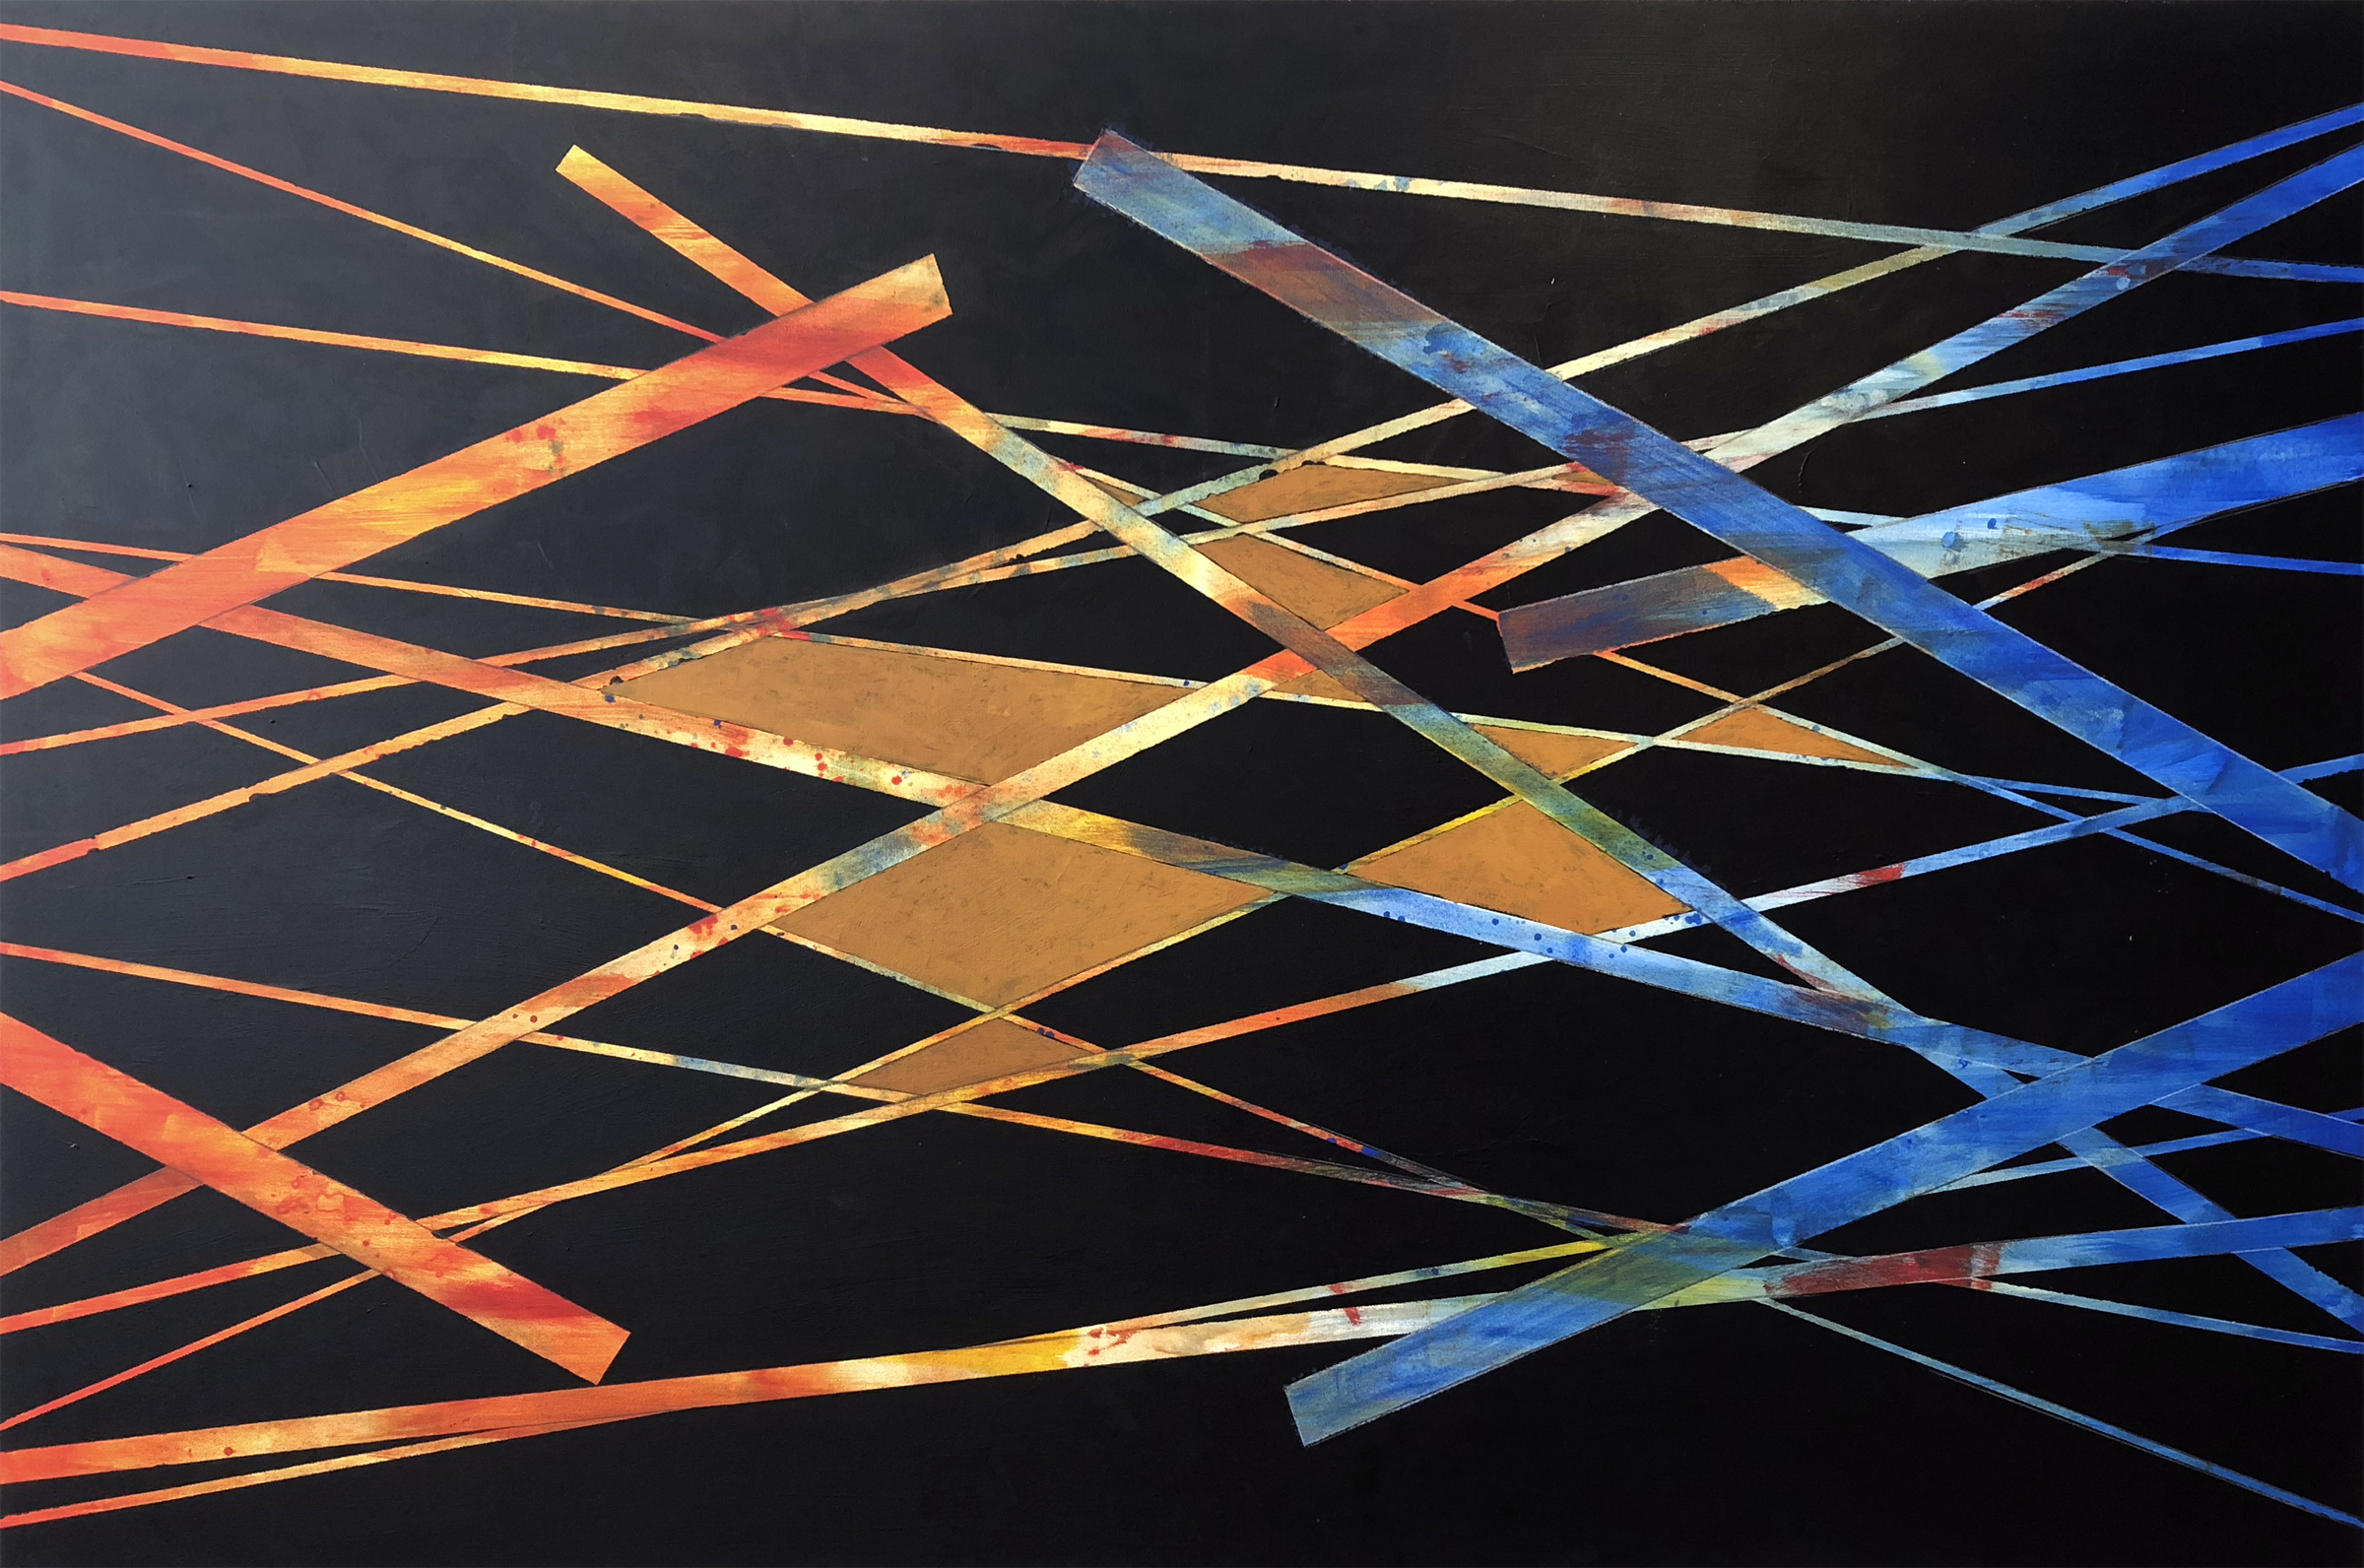 OSVALDO ROMBERG | Dirty Geometry, 48 x 72 inches / 122 x 183 cm, acrylic on canvas, 2013